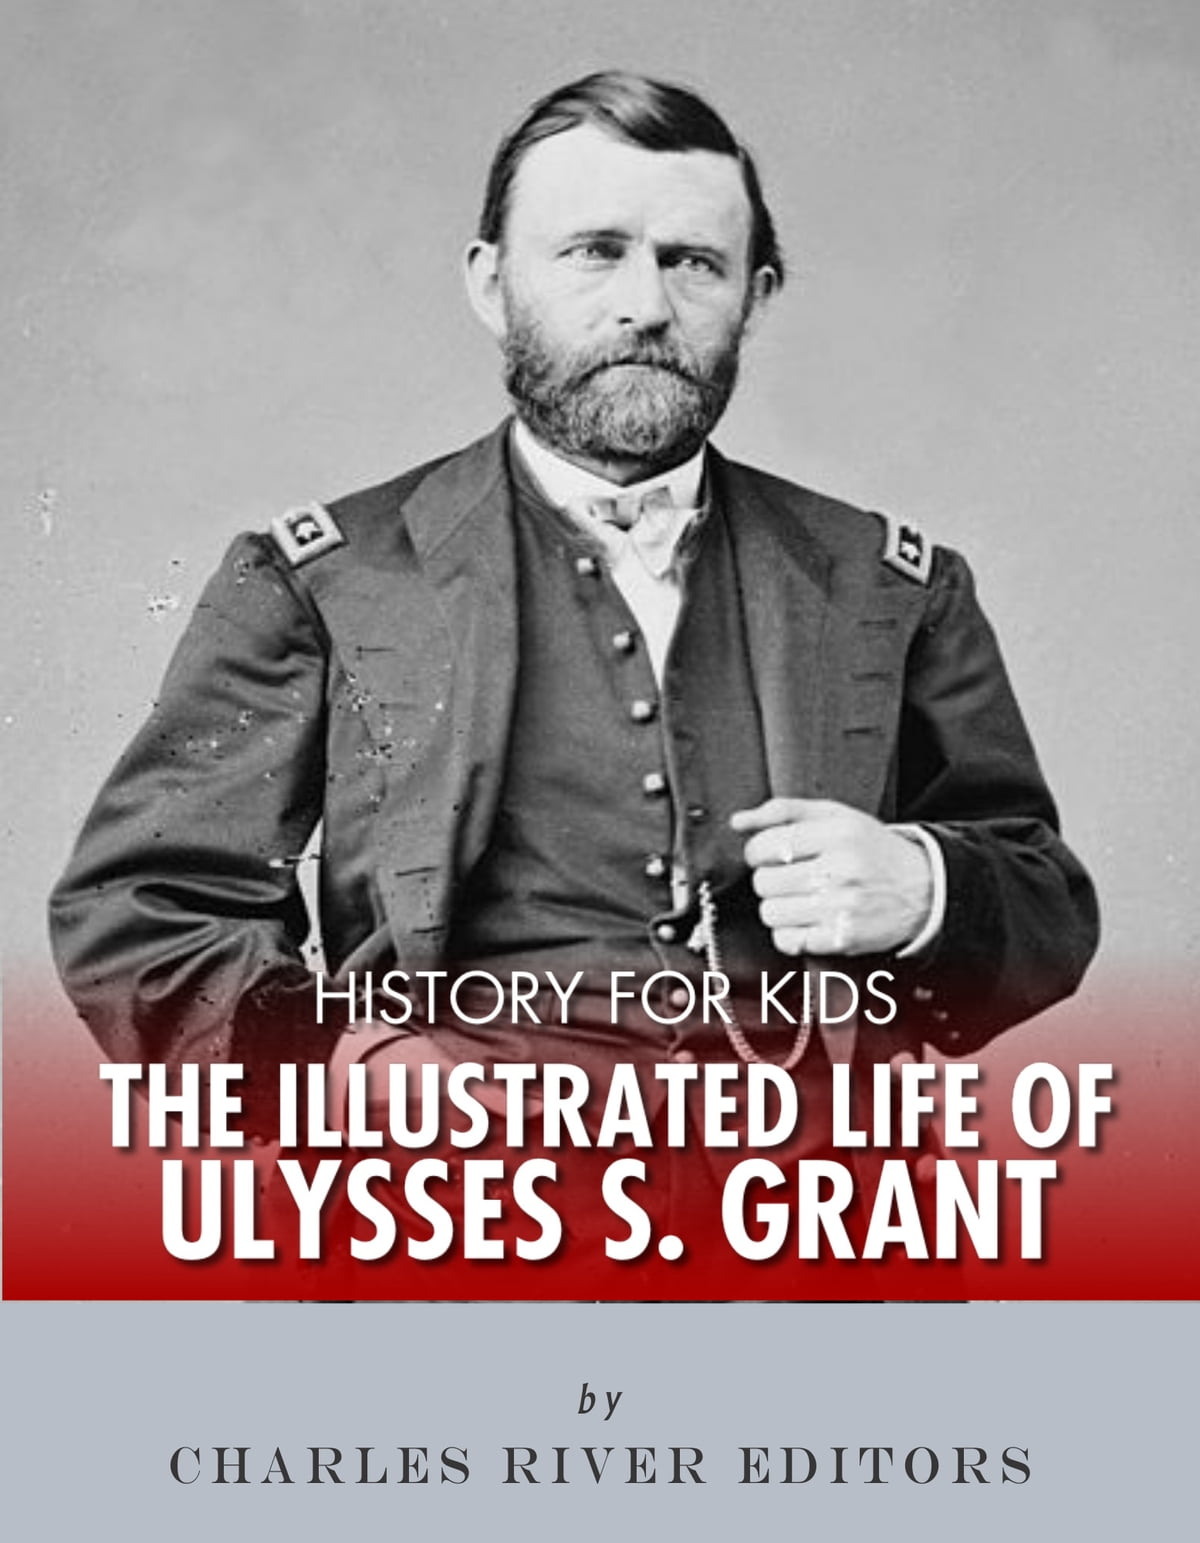 History for Kids: The Illustrated Life of Ulysses S. Grant